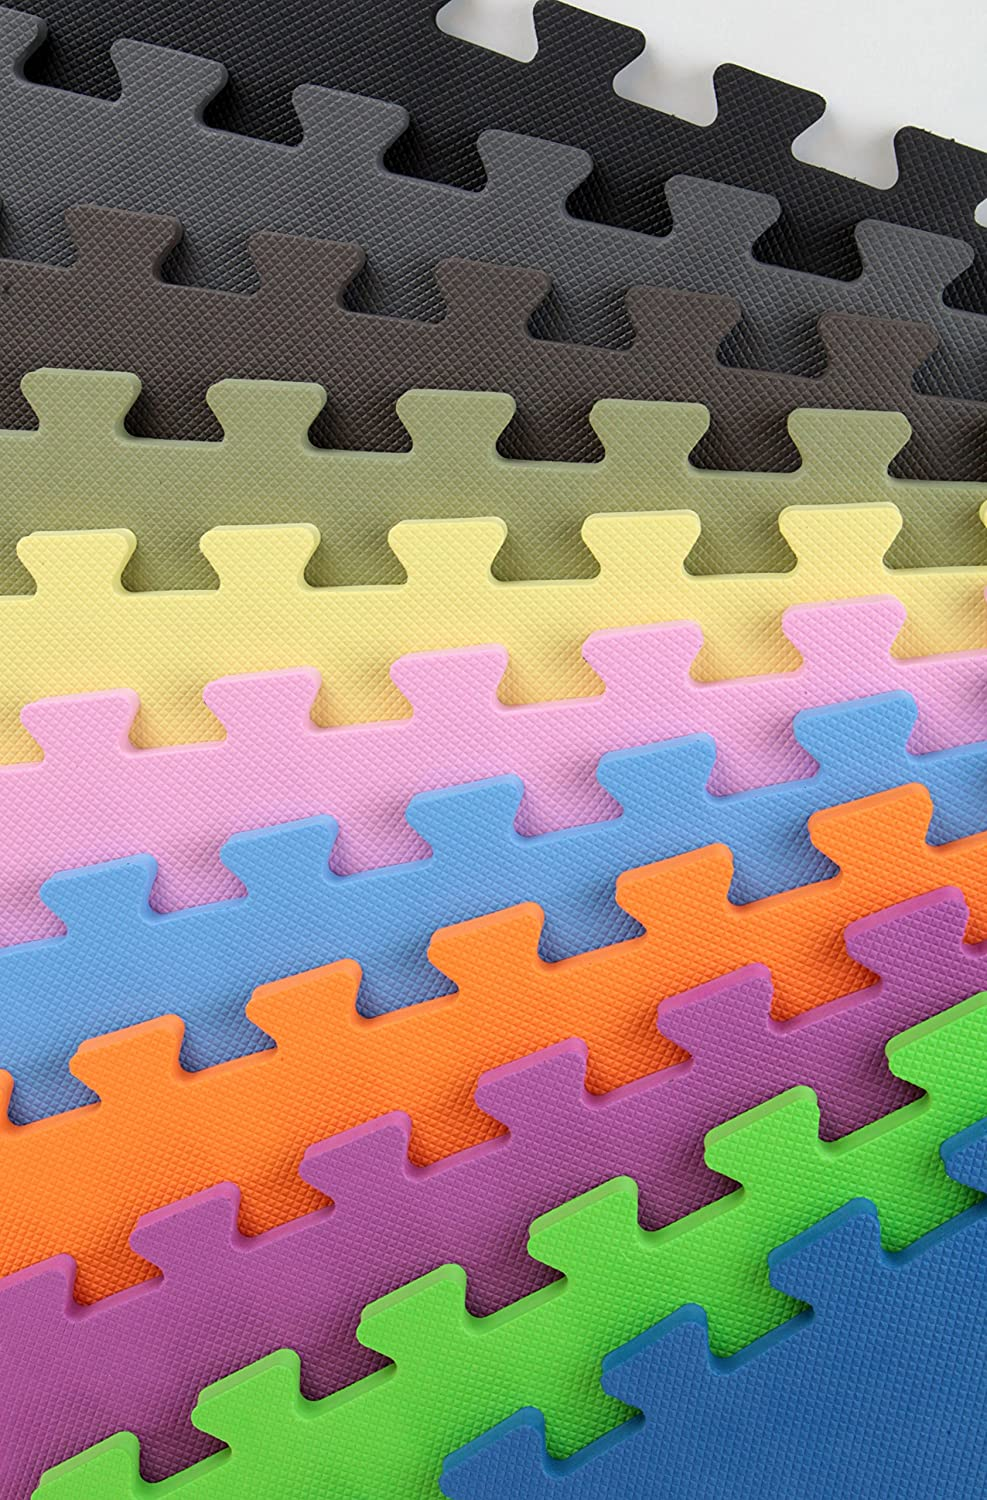 Amazon incstores premium interlocking foam tiles ideal for amazon incstores premium interlocking foam tiles ideal for p90x insanity pilates yoga other aerobiccardio work outs and kids playrooms dailygadgetfo Image collections